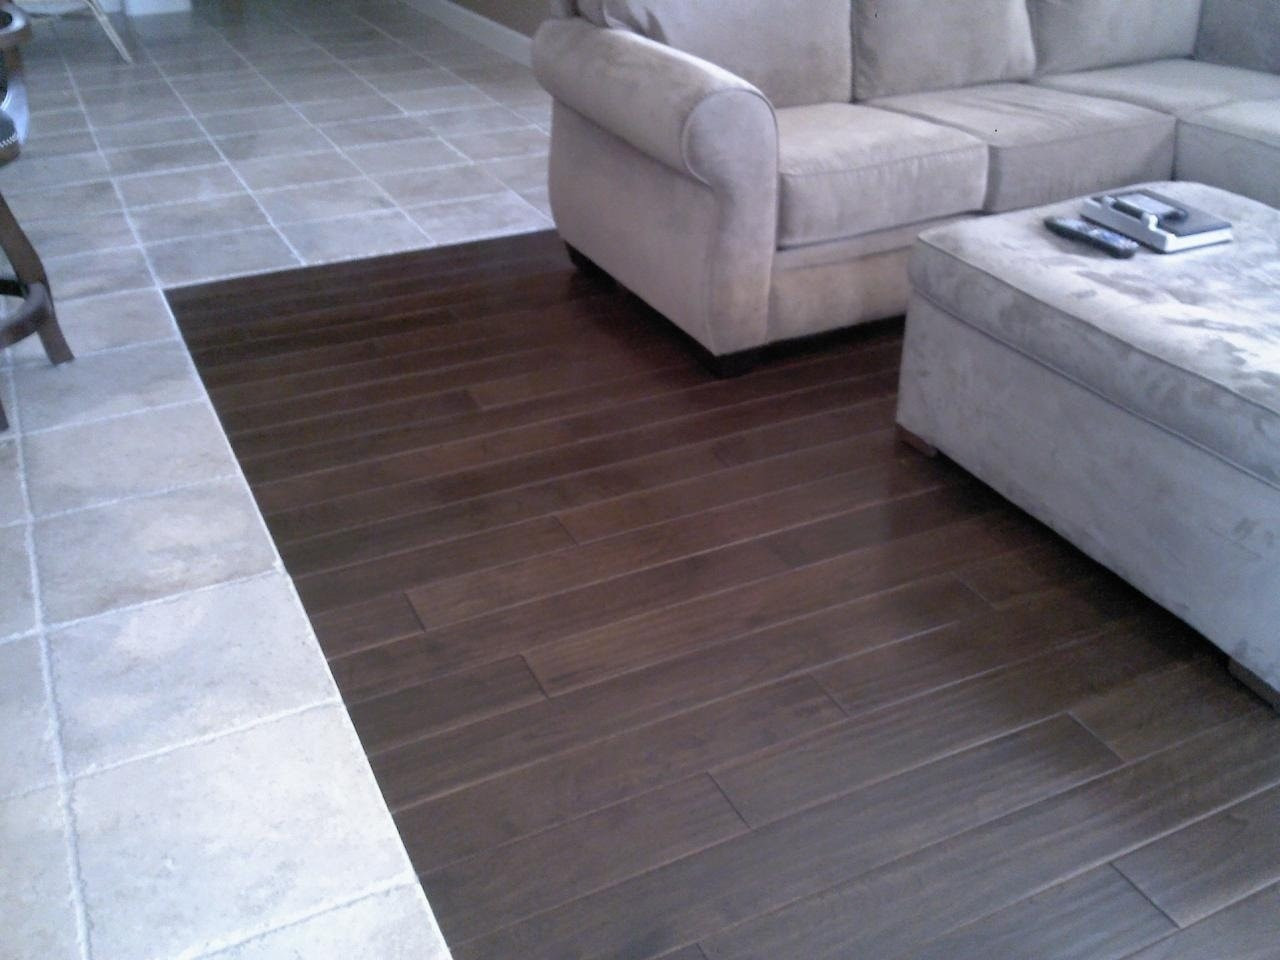 pictures of dark hardwood floors in homes of 37 fresh black hardwood floors collection flooring design ideas in black hardwood floors unique dark wood floor tiles dark wood floor tiles i unowinc images of